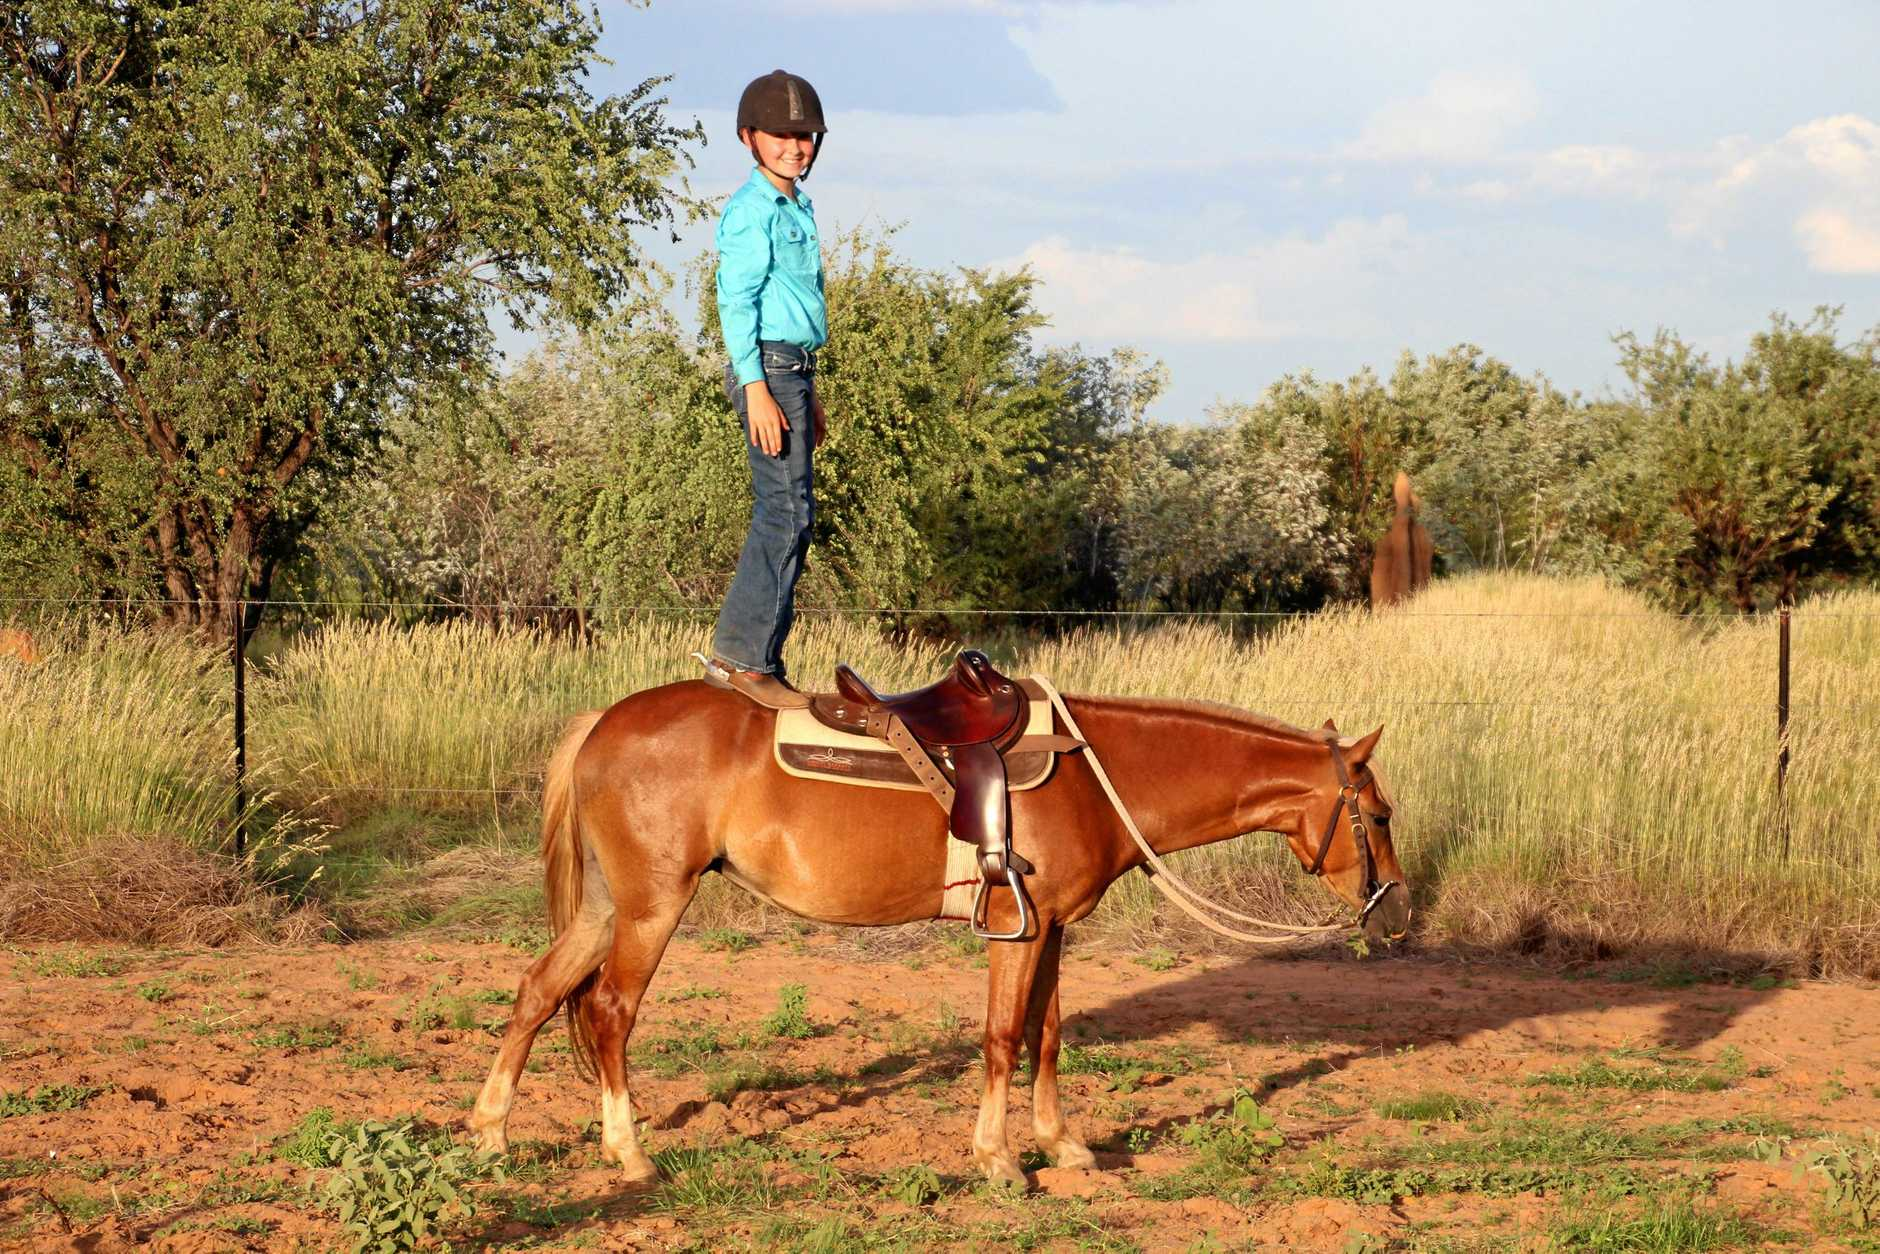 Annabelle Towne, from Gogo Station, standing on Pumpkin. The Welsh mountain pony will be auctioned off to raise money for Dolly's Dream Foundation.